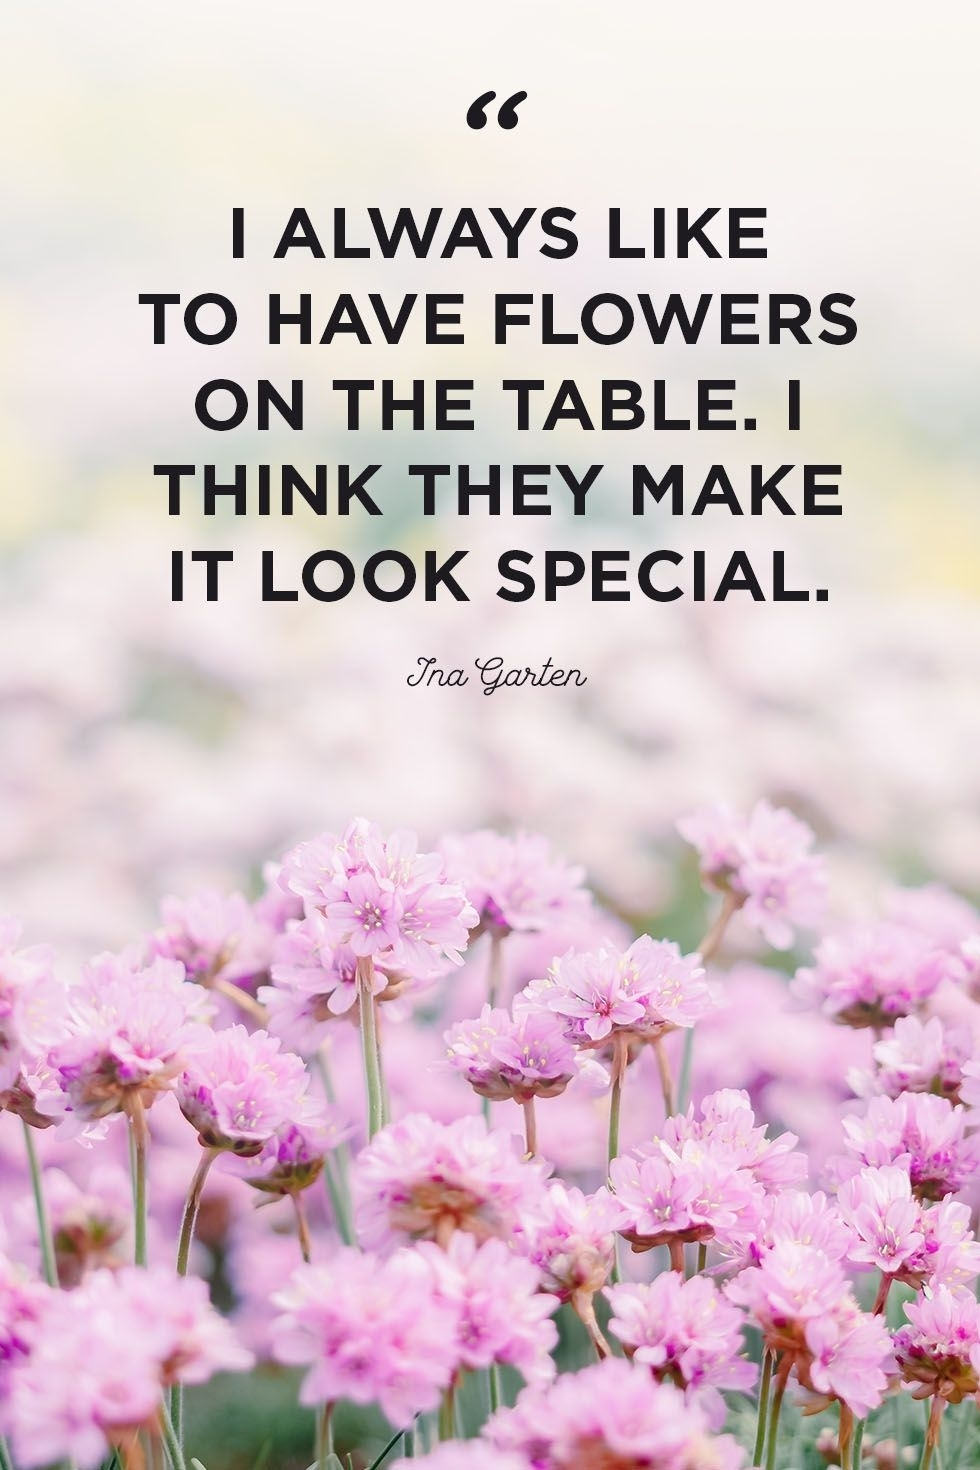 30 Inspirational Flower Quotes - Cute Flower Sayings About Life And Love intended for Flowers In The Garden Quotes